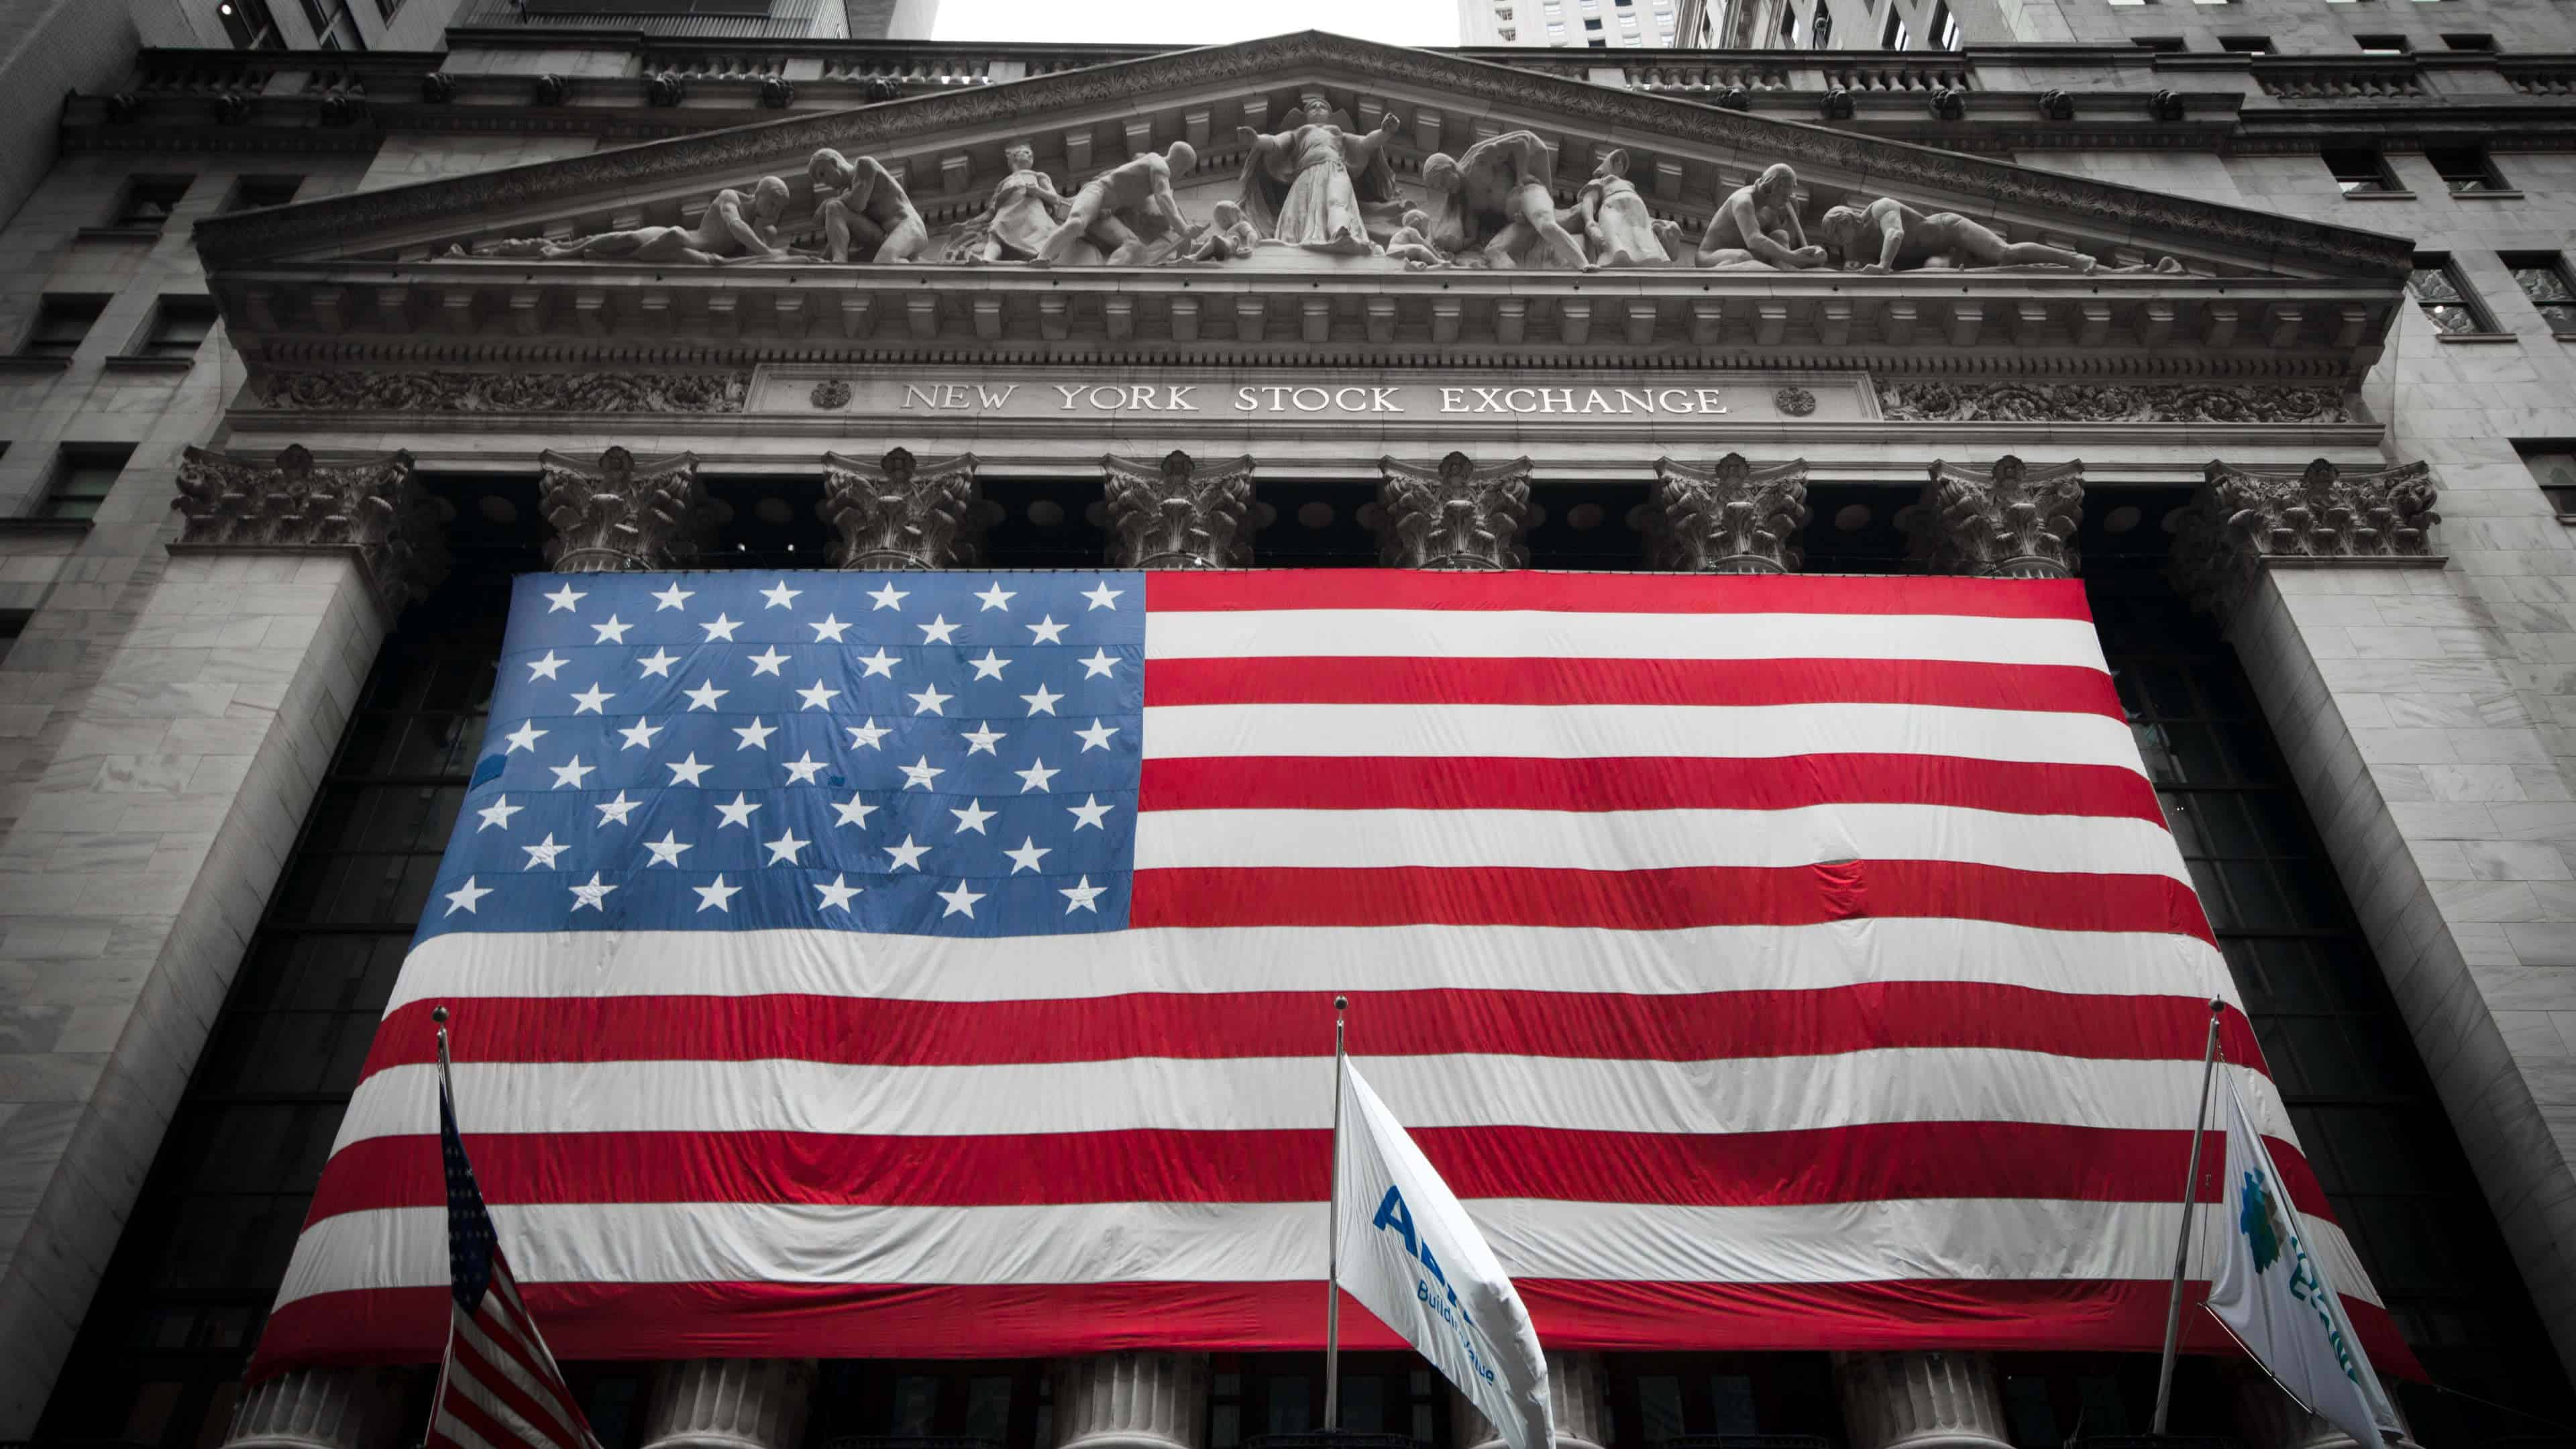 Sports Wallpapers Hd New York Stock Exchange Nyse United States Uhd 4k